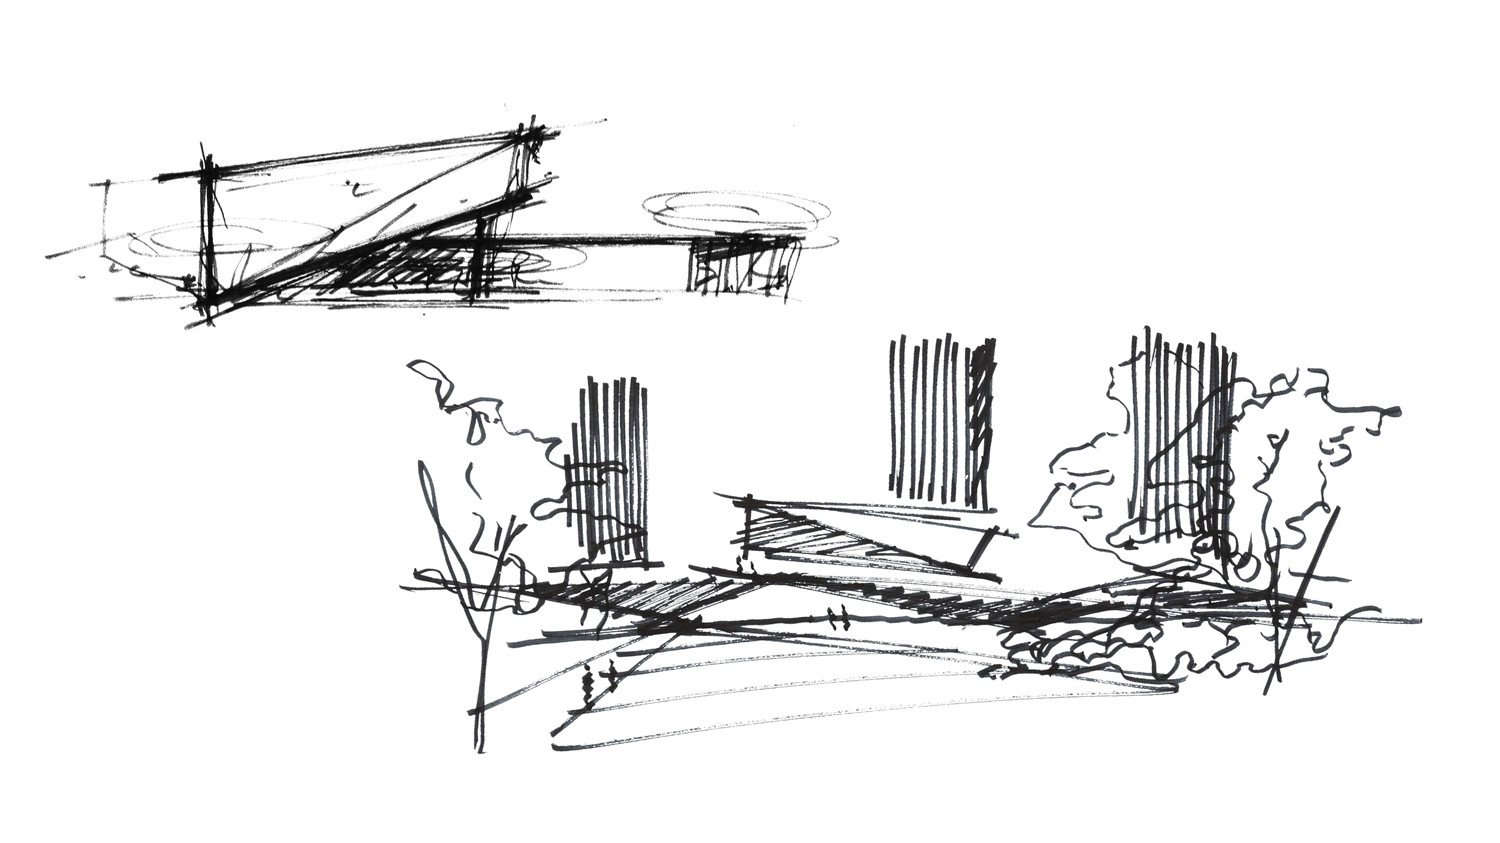 sketche2 International Conference Center Soo K. Chan}